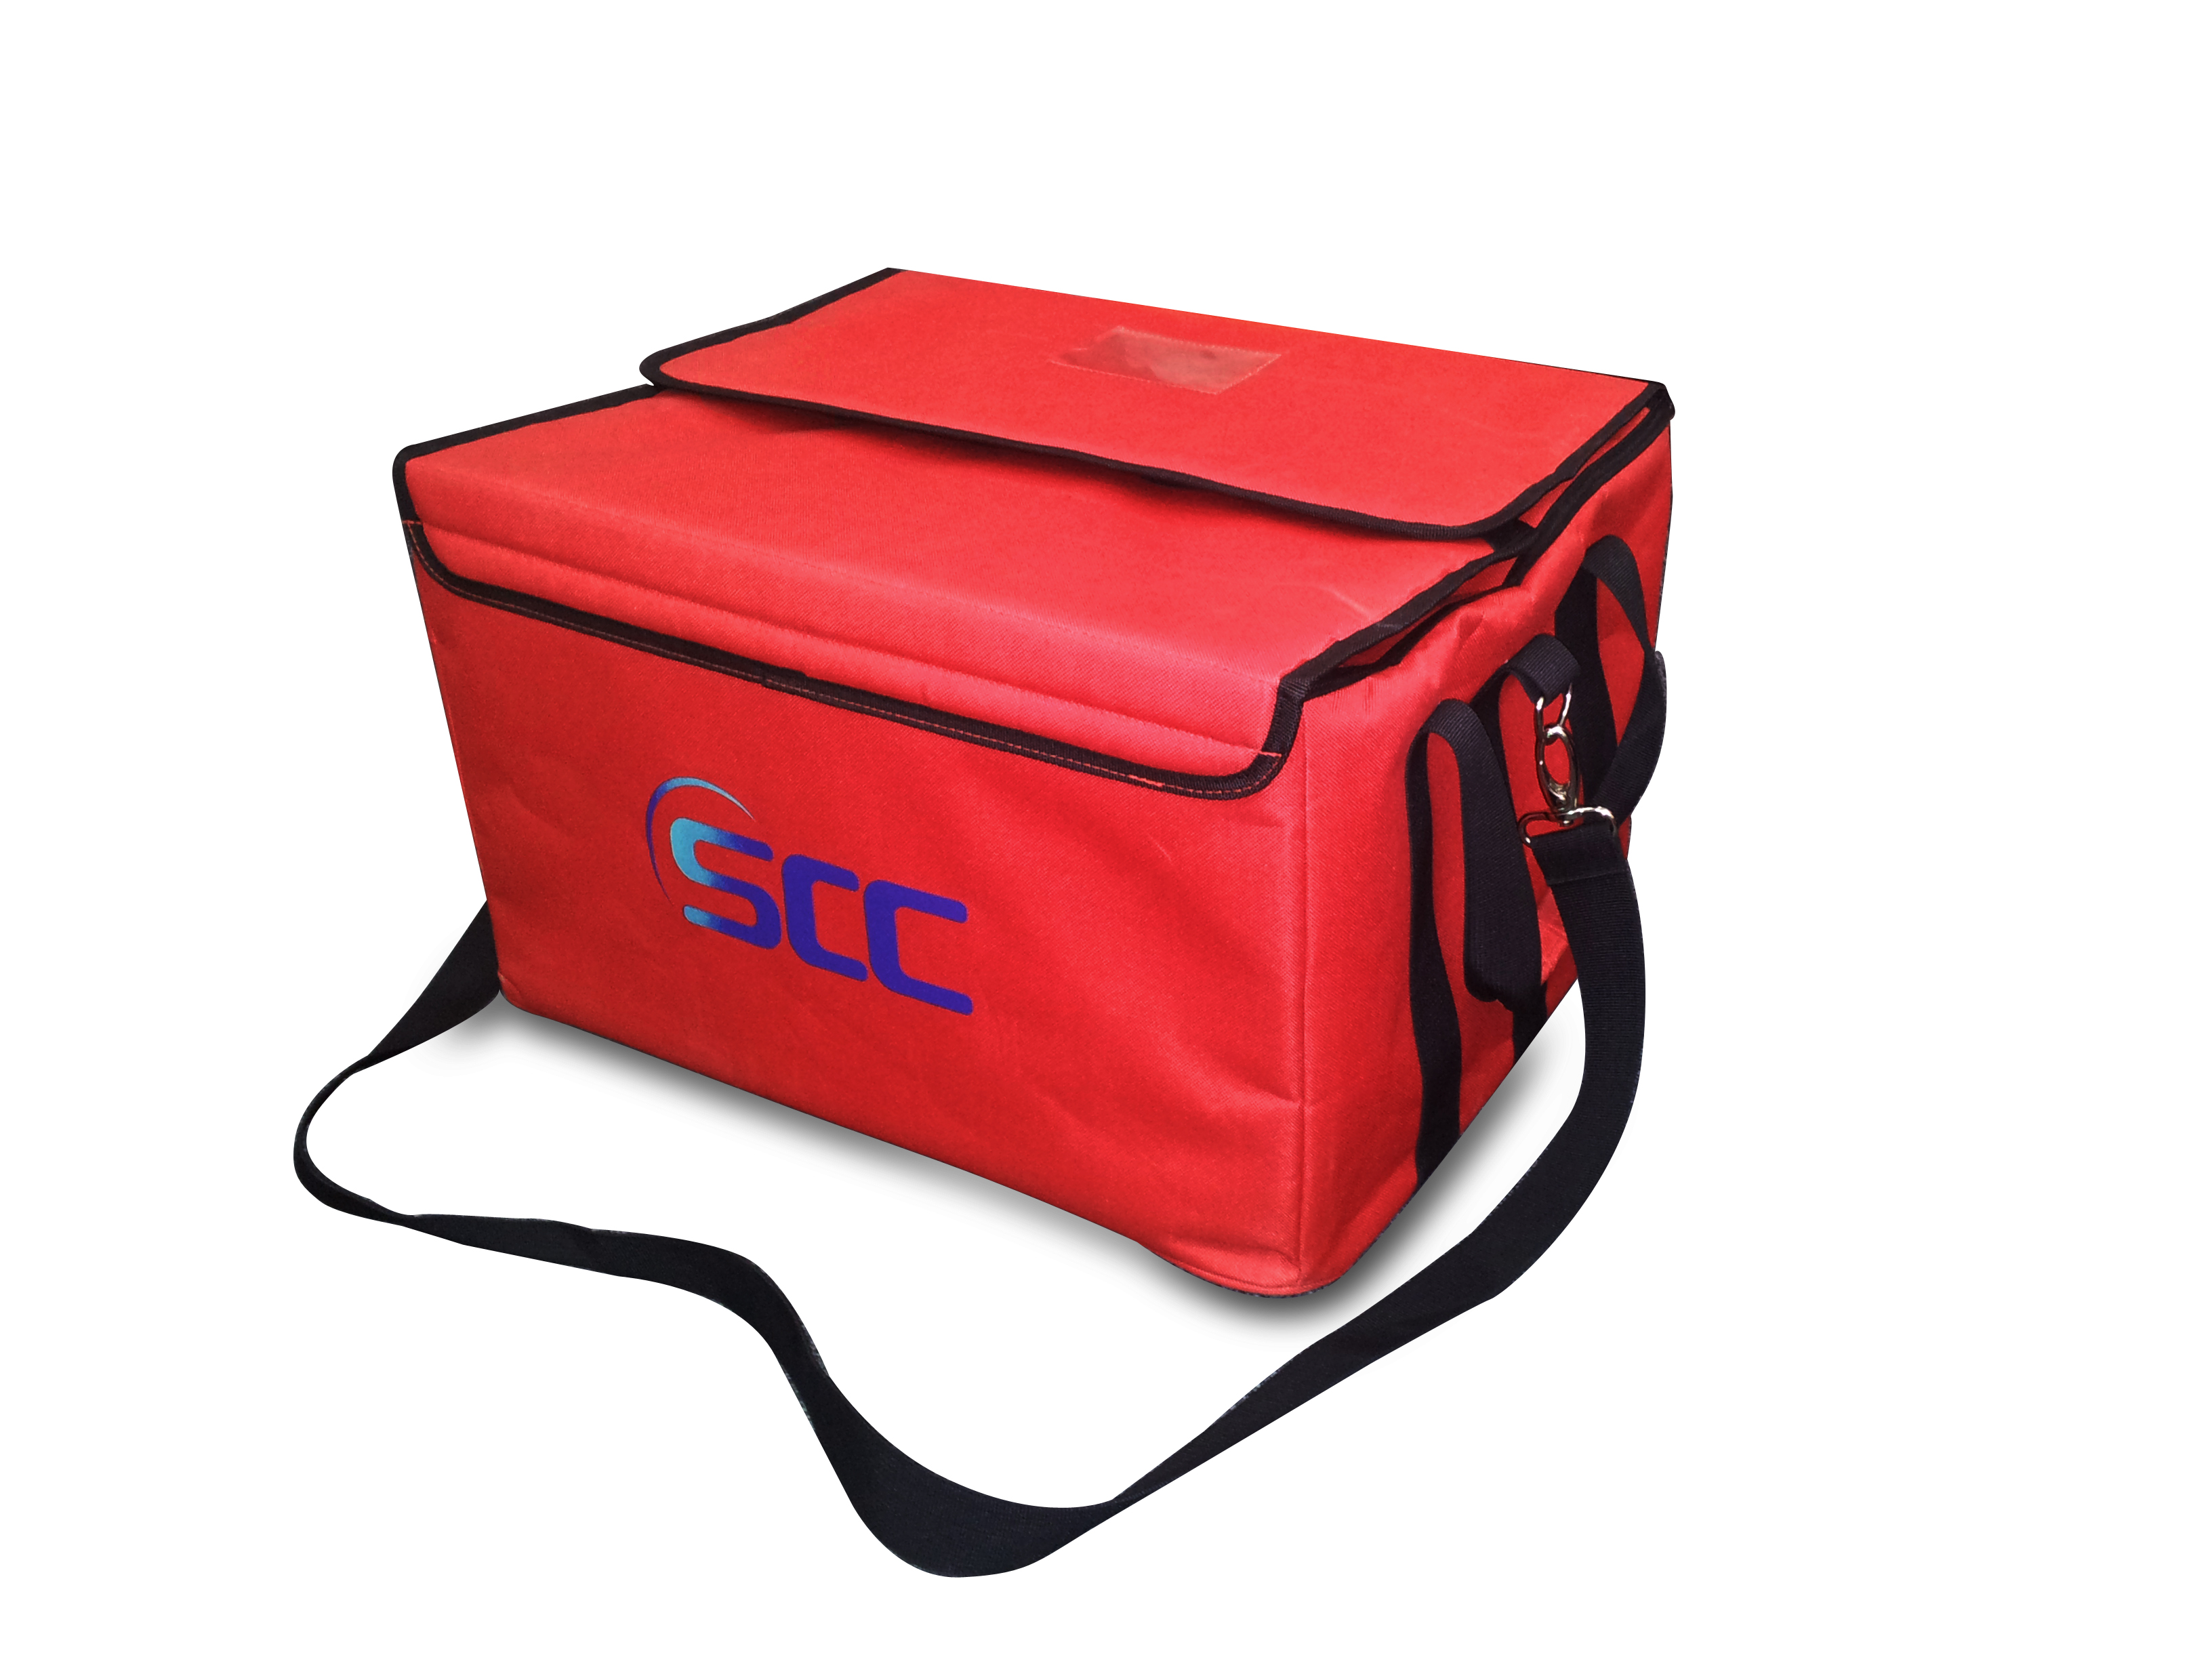 50L Food delivery bags SE6-A50